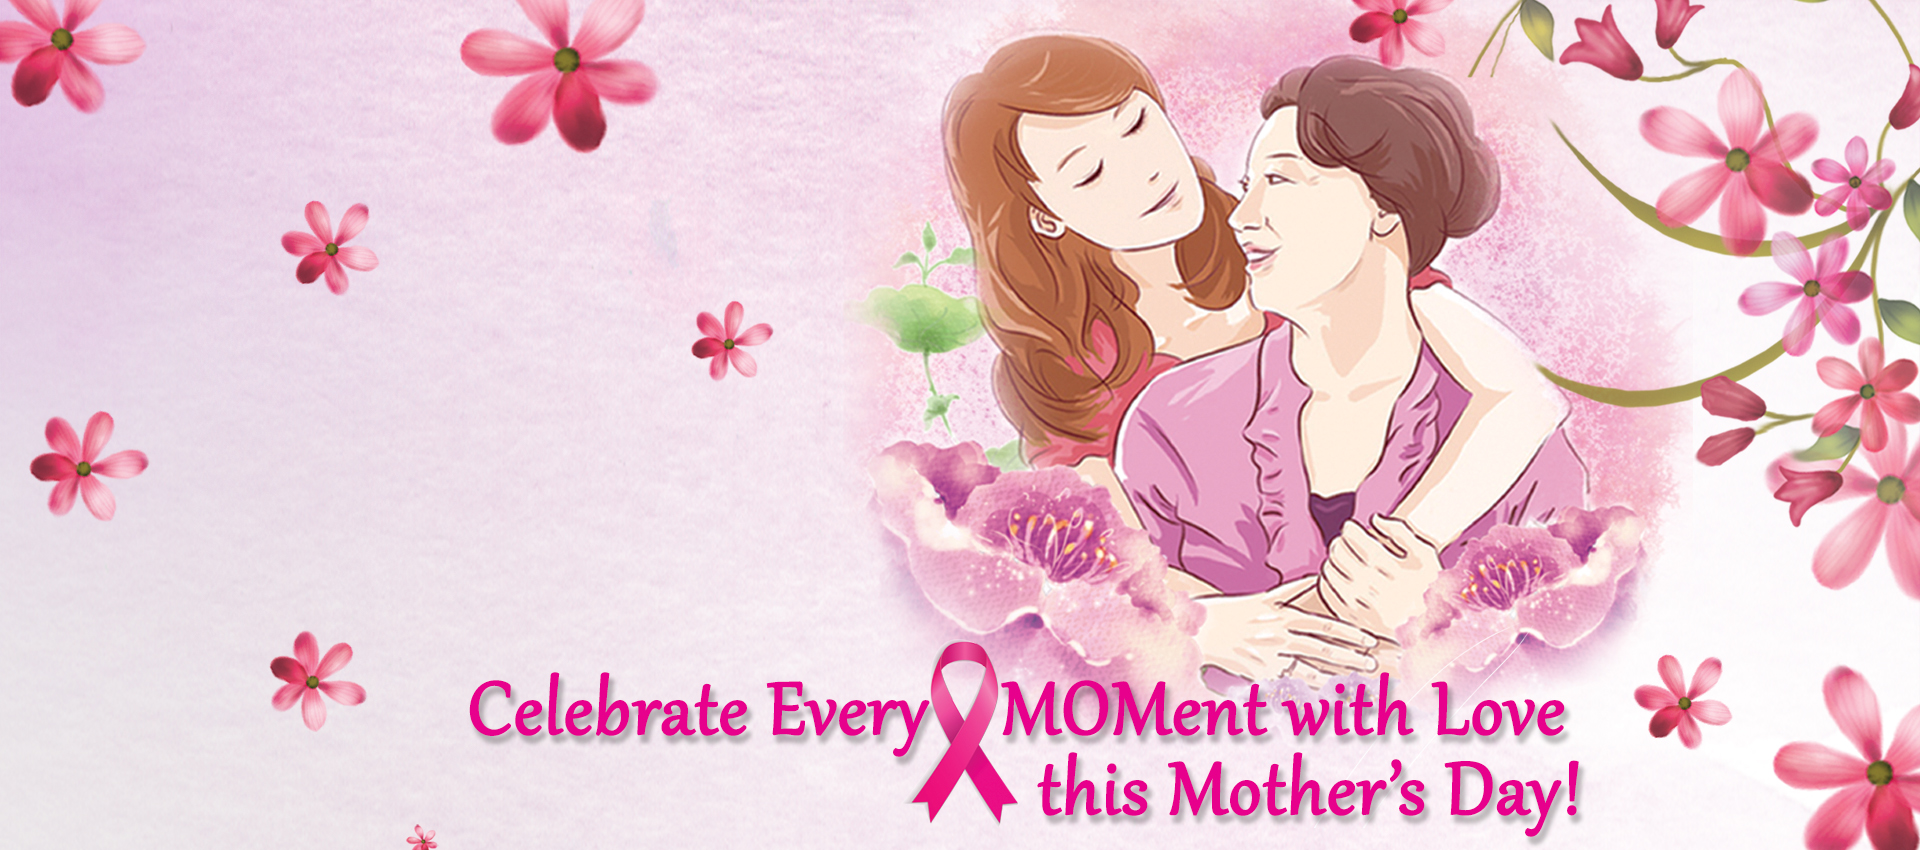 Celebrate Every MOMent with Love this Mother's Day!